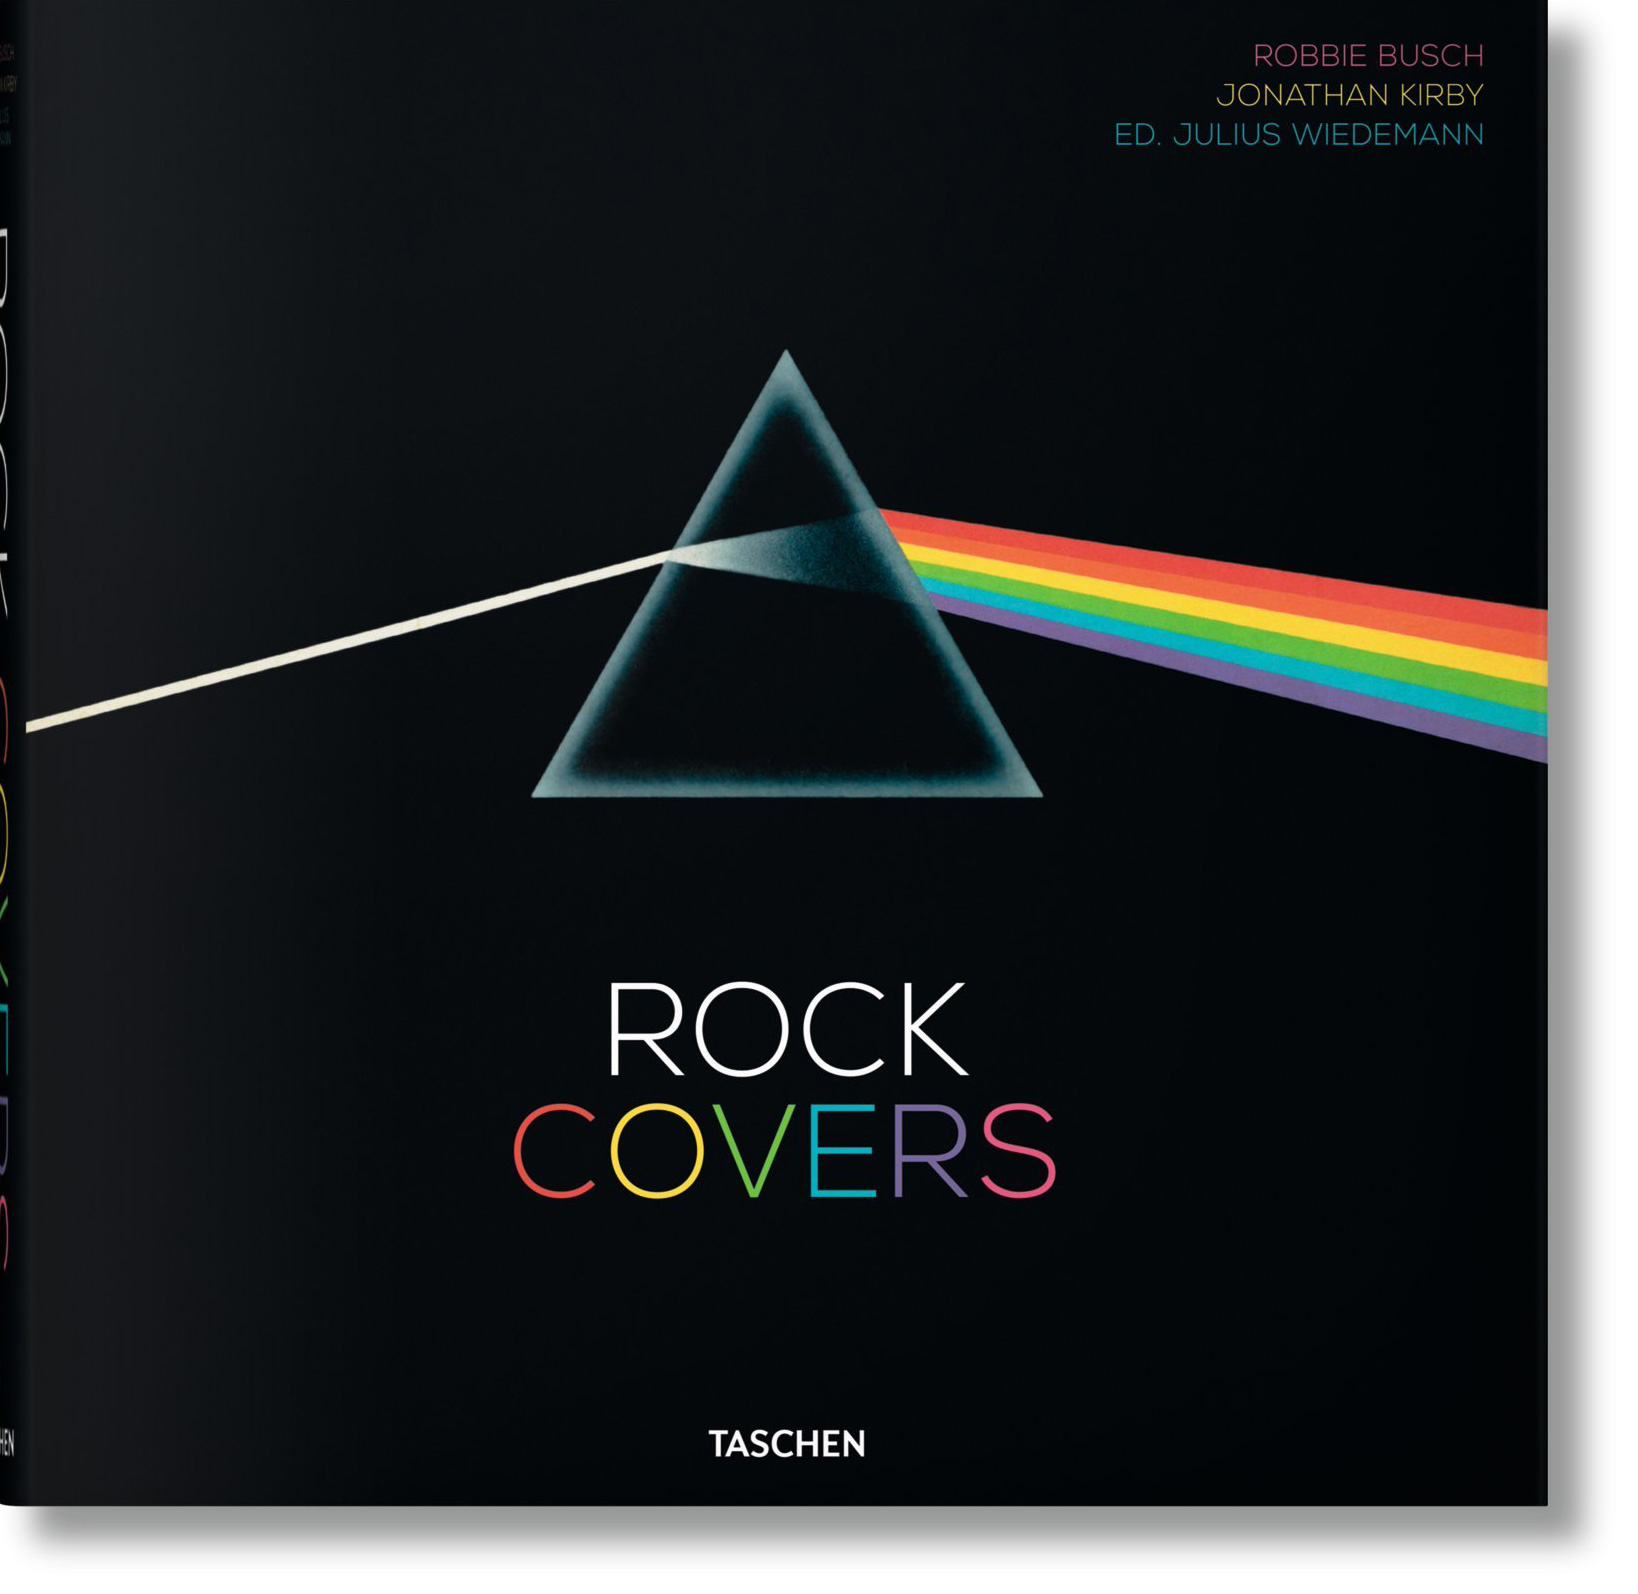 Paying tribute to album art, 'Rock Covers' brings a compilation of more than 750 remarkable album covers, from legendary to rare record releases | Cross Border Conversations | Aniruddh Mehta X Julius Wiedemann | STIR X LOCO Design